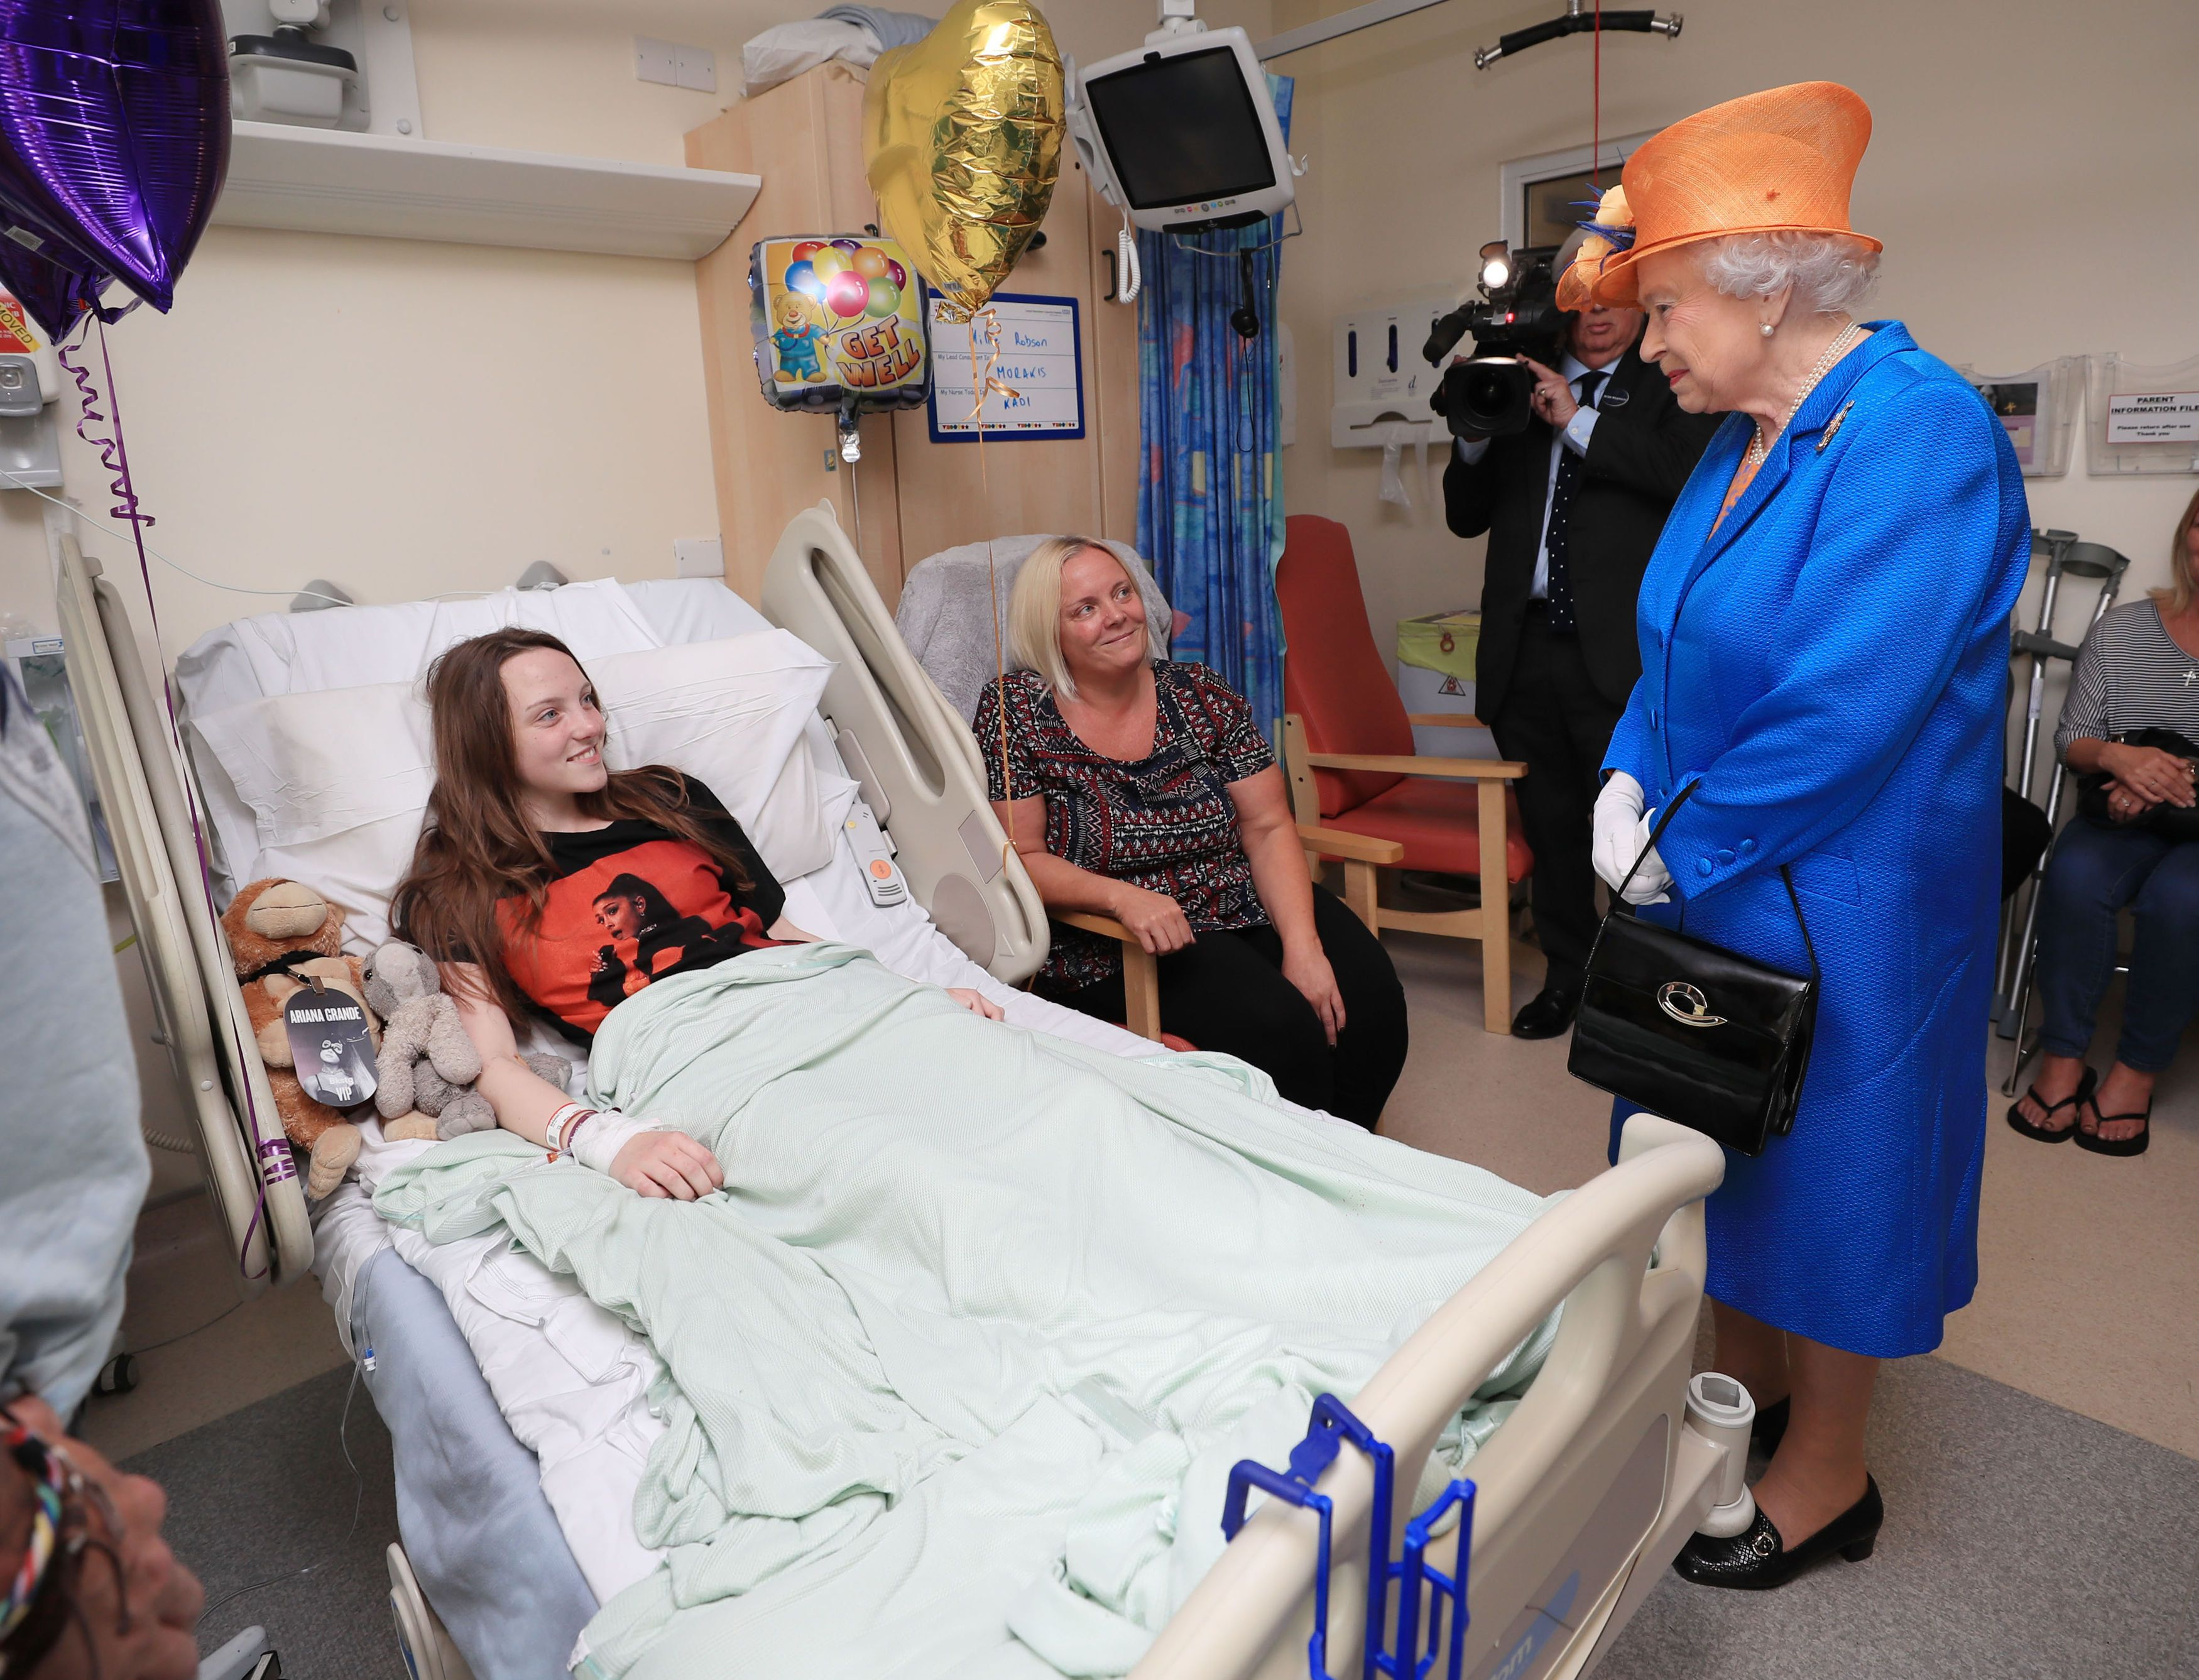 The Queen Visits Manchester Bombing Victims At Children's